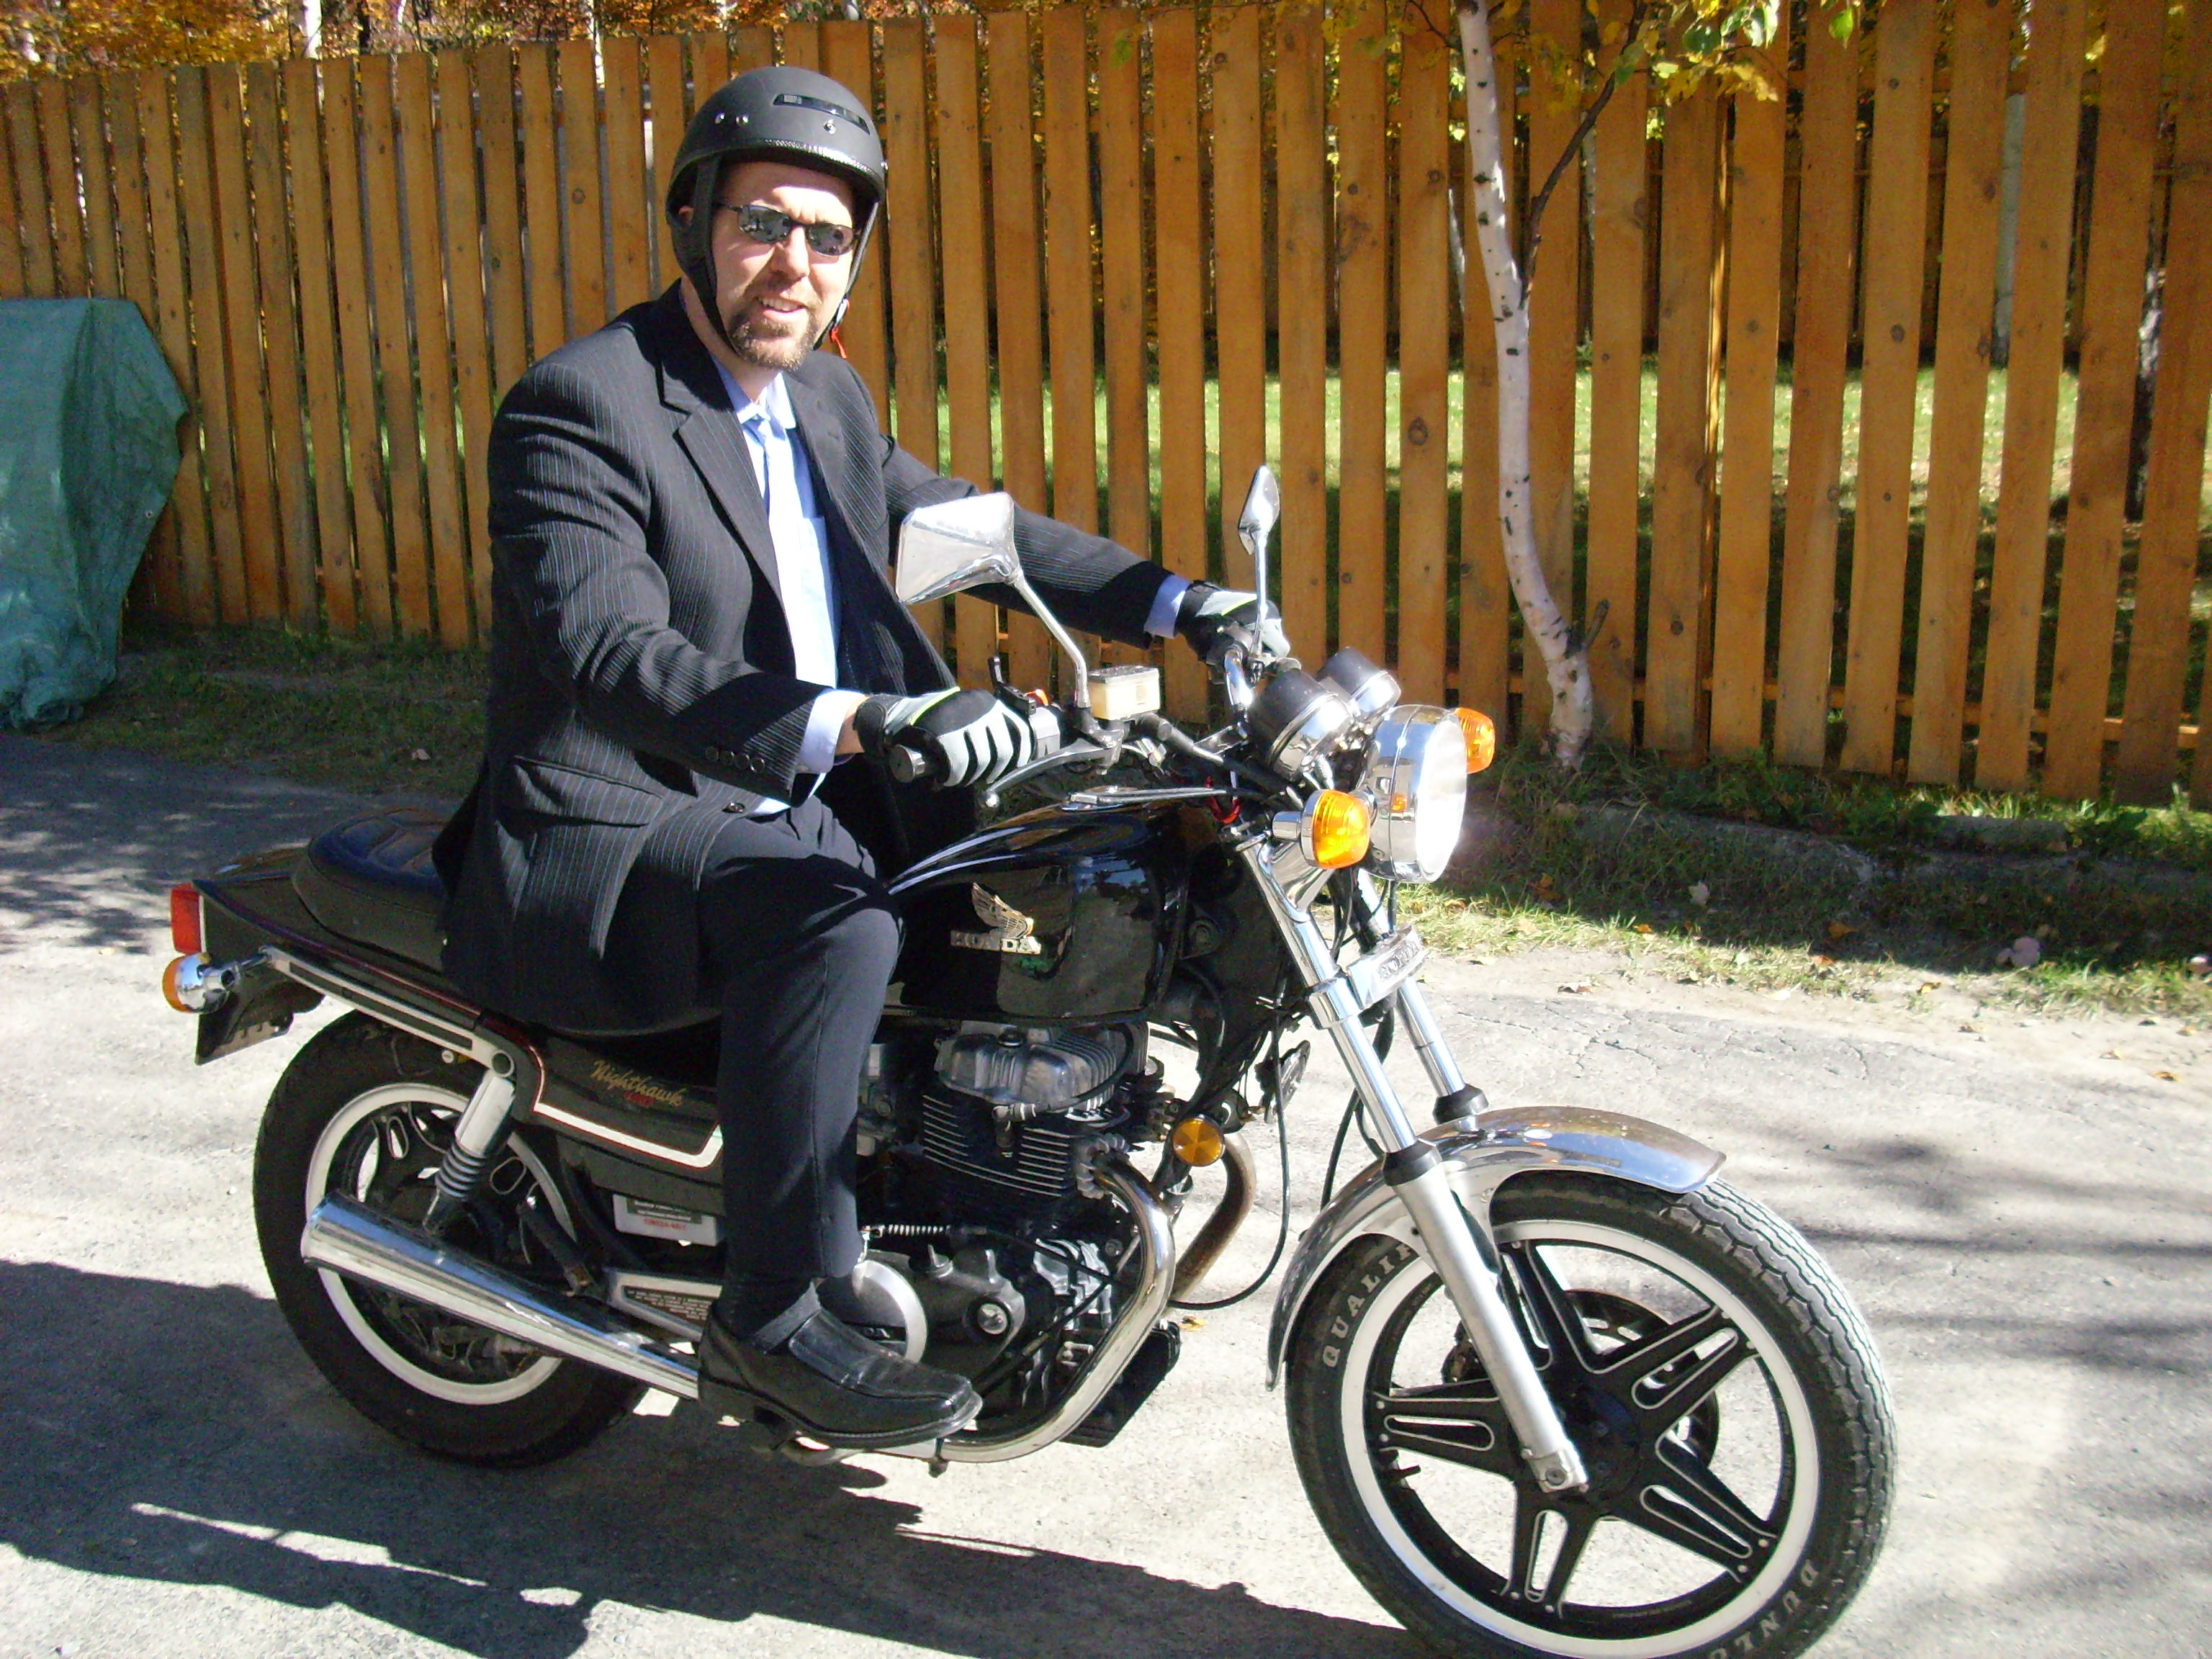 Motorcycle Preacher Living In The Moments 1982 Honda Nighthawk I Can Just Imagine Him Pulling Up To Church On His Everyone Smiling Including Fact He Probably Had Biggest Smile